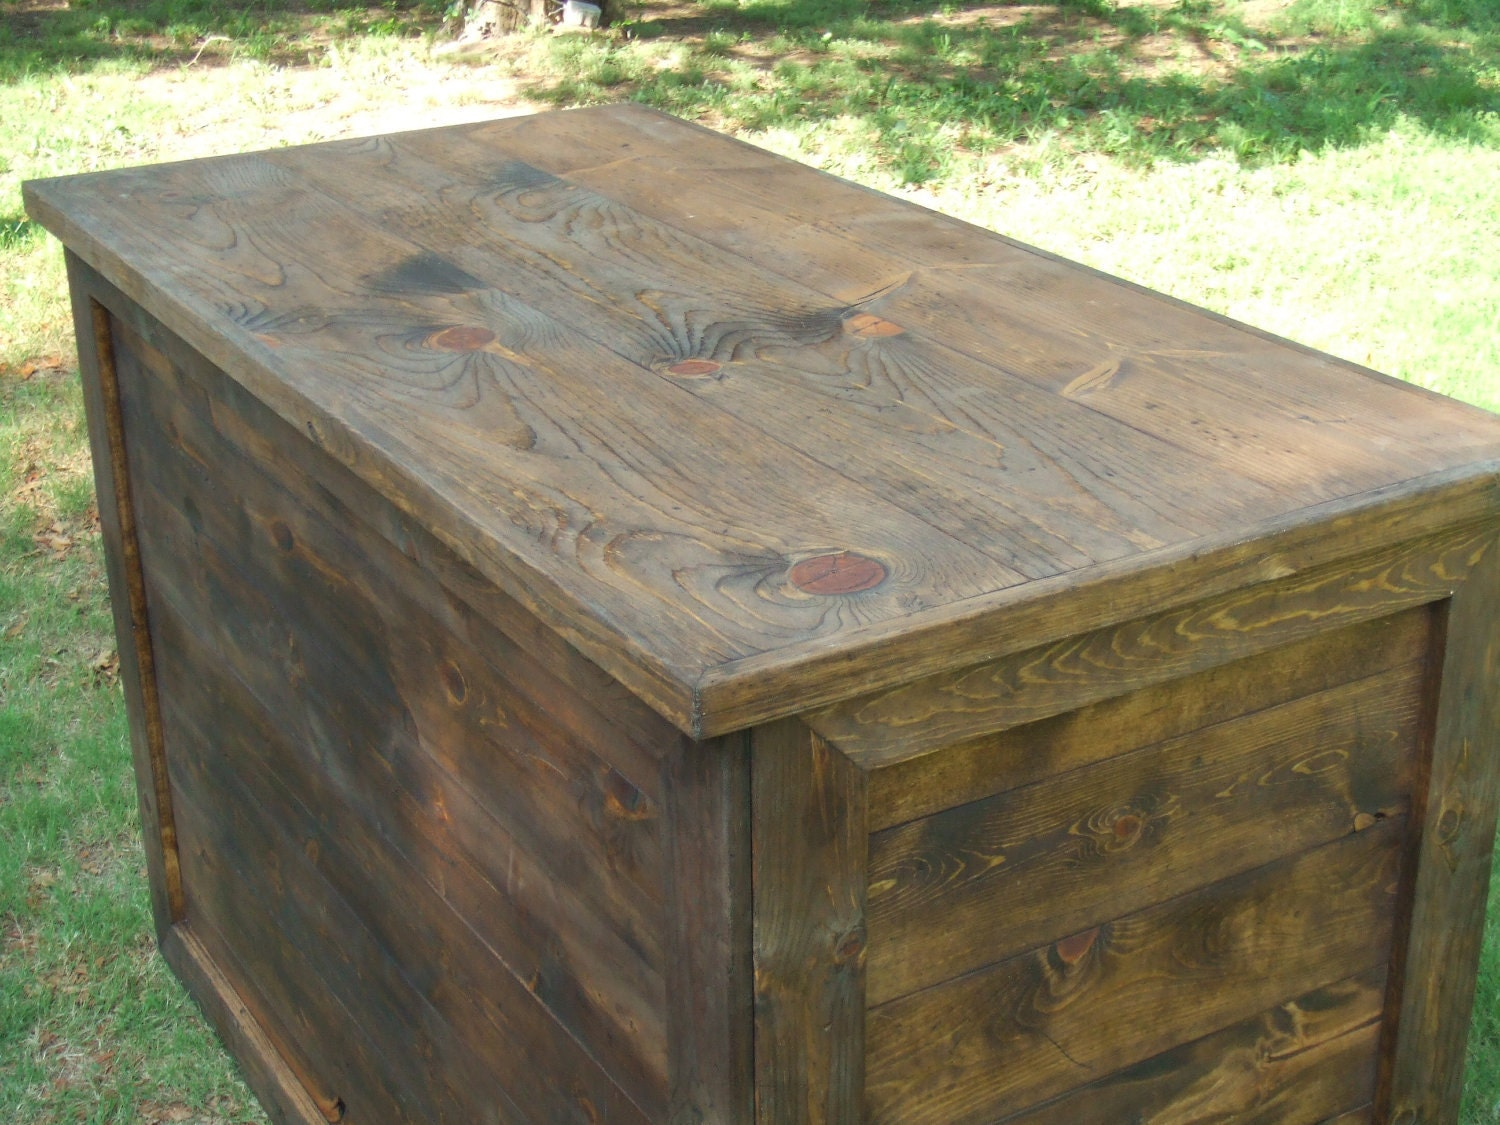 Rustic custom table - farmhouse furniture - portable for display booth - BlackCatHill